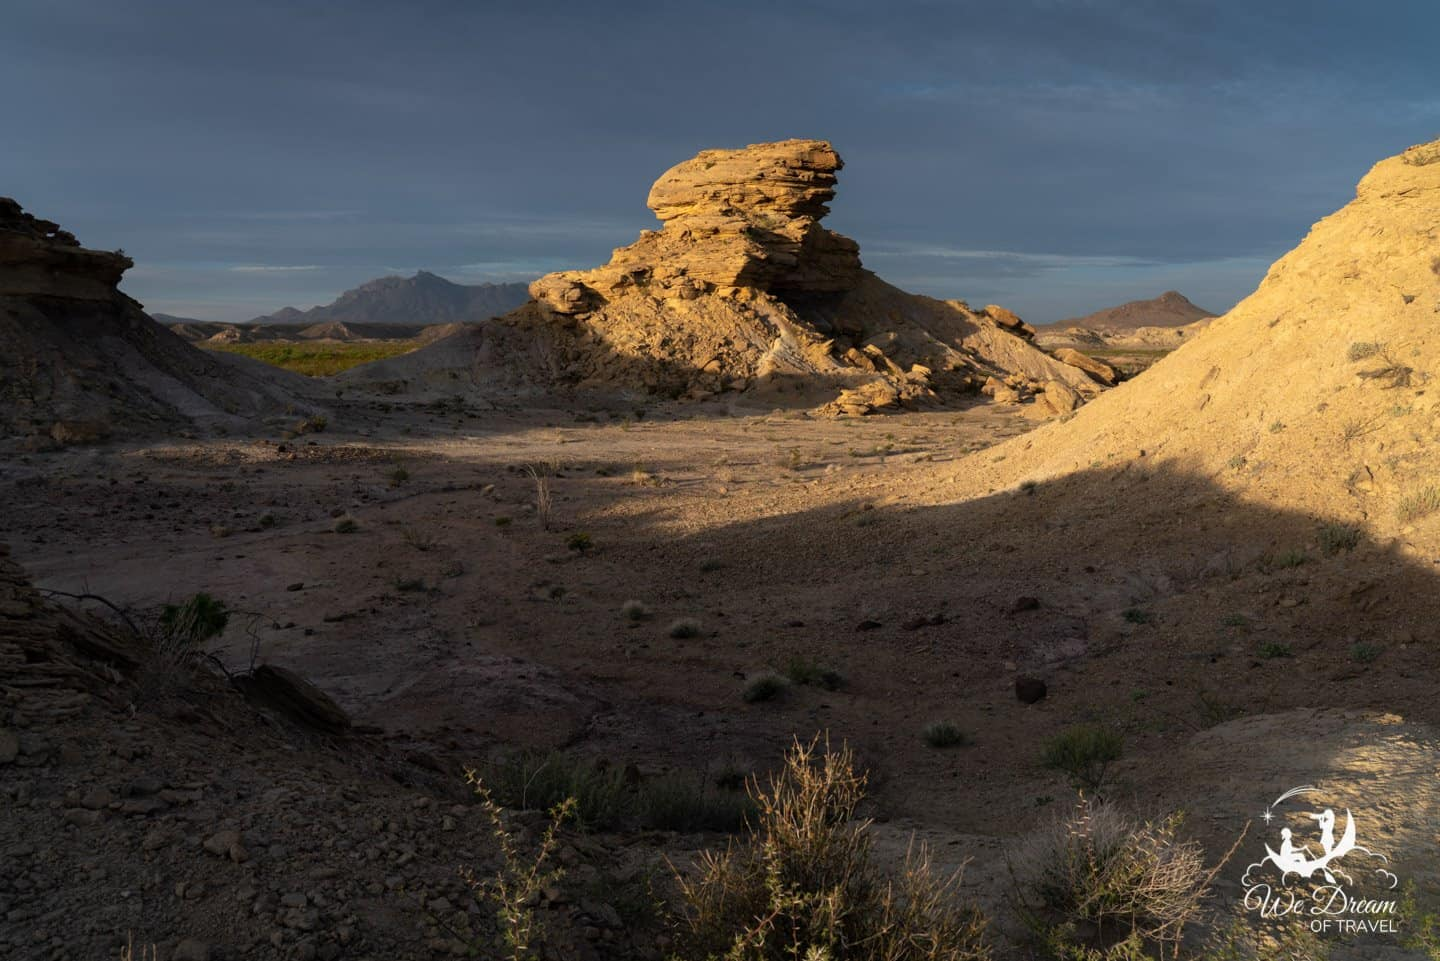 The morning golden hour is the best time for capturing those perfect Big Bend National Park pictures.